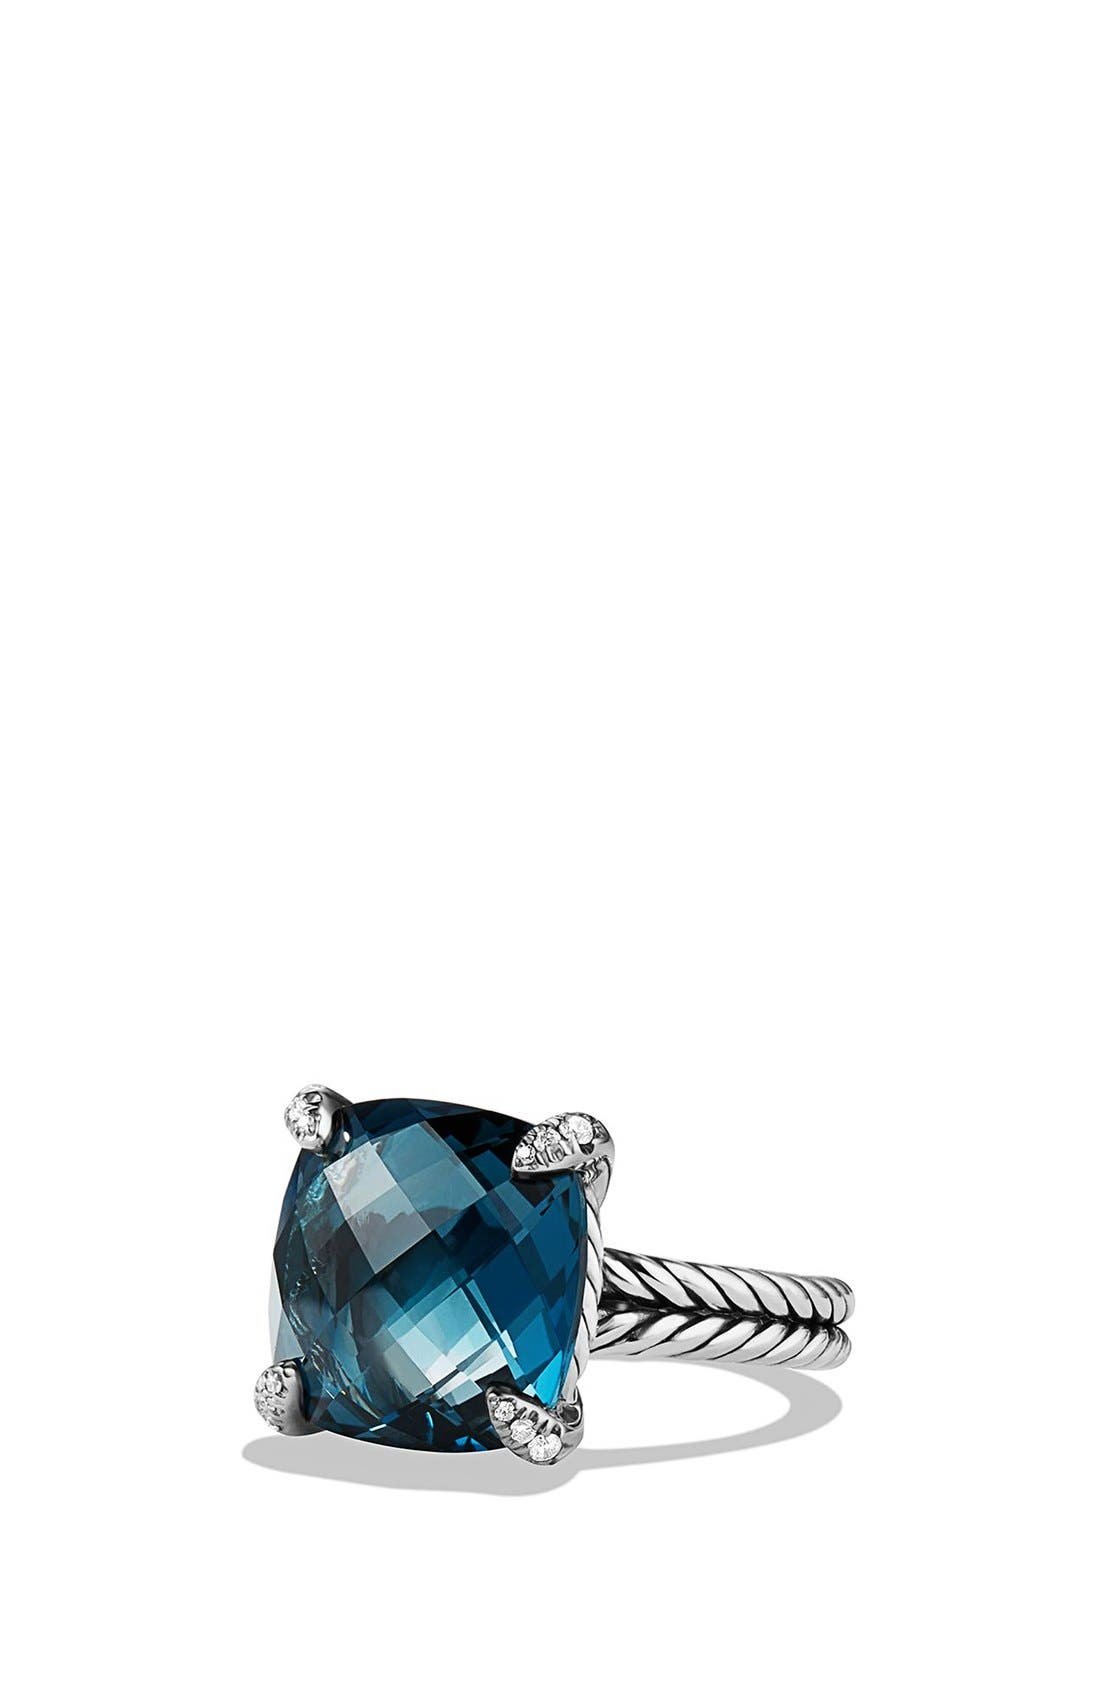 'Châtelaine' Ring with Semiprecious Stone and Diamonds,                         Main,                         color, Silver/ Hampton Blue Topaz